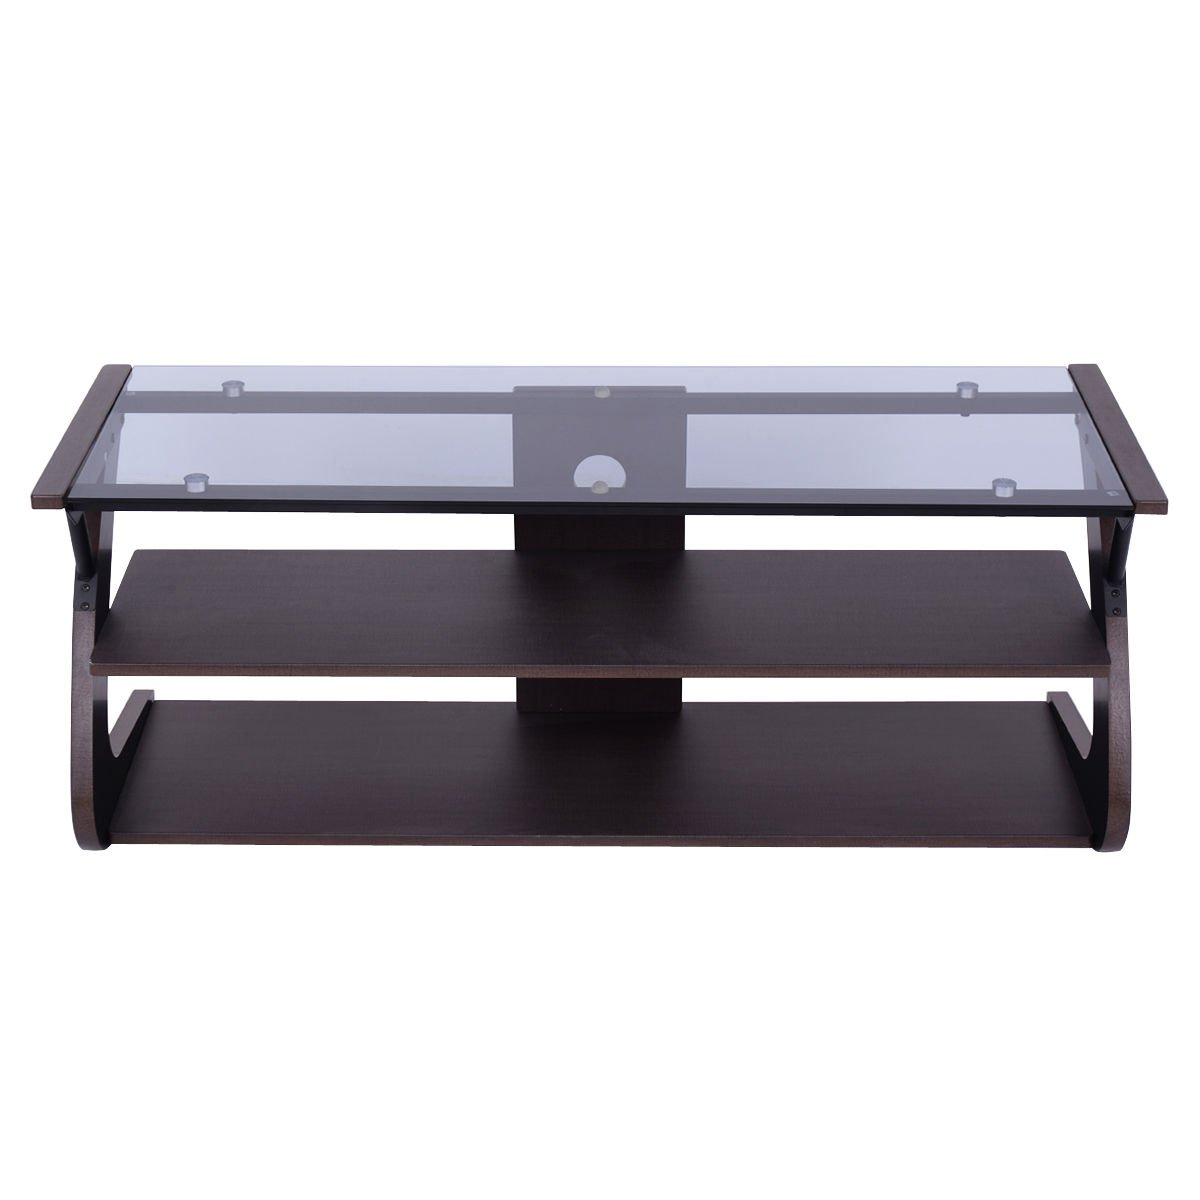 3 Tier Tempered Glass Top TV Stand Entertainment Center Media Console Furniture